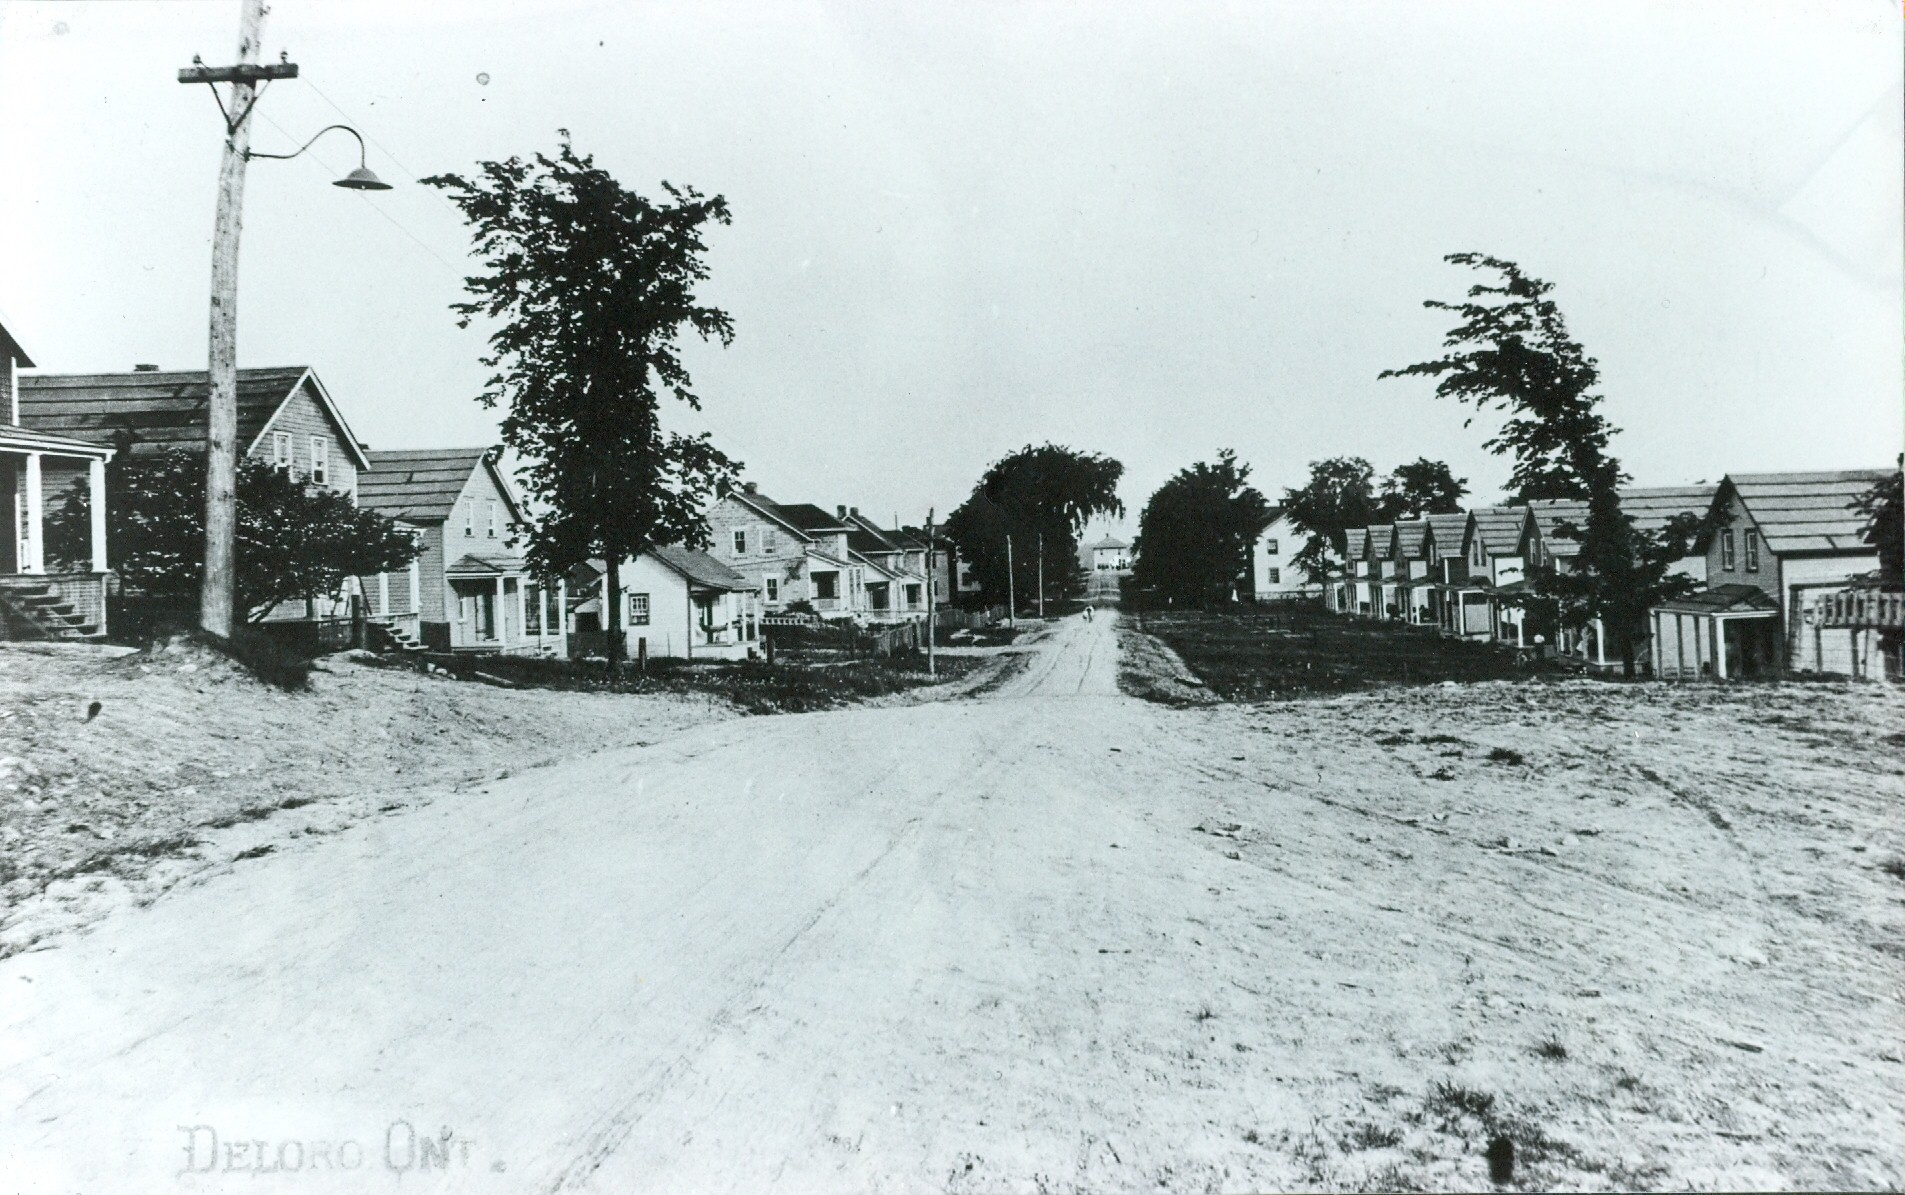 1948 O'Brien St. (looking south)